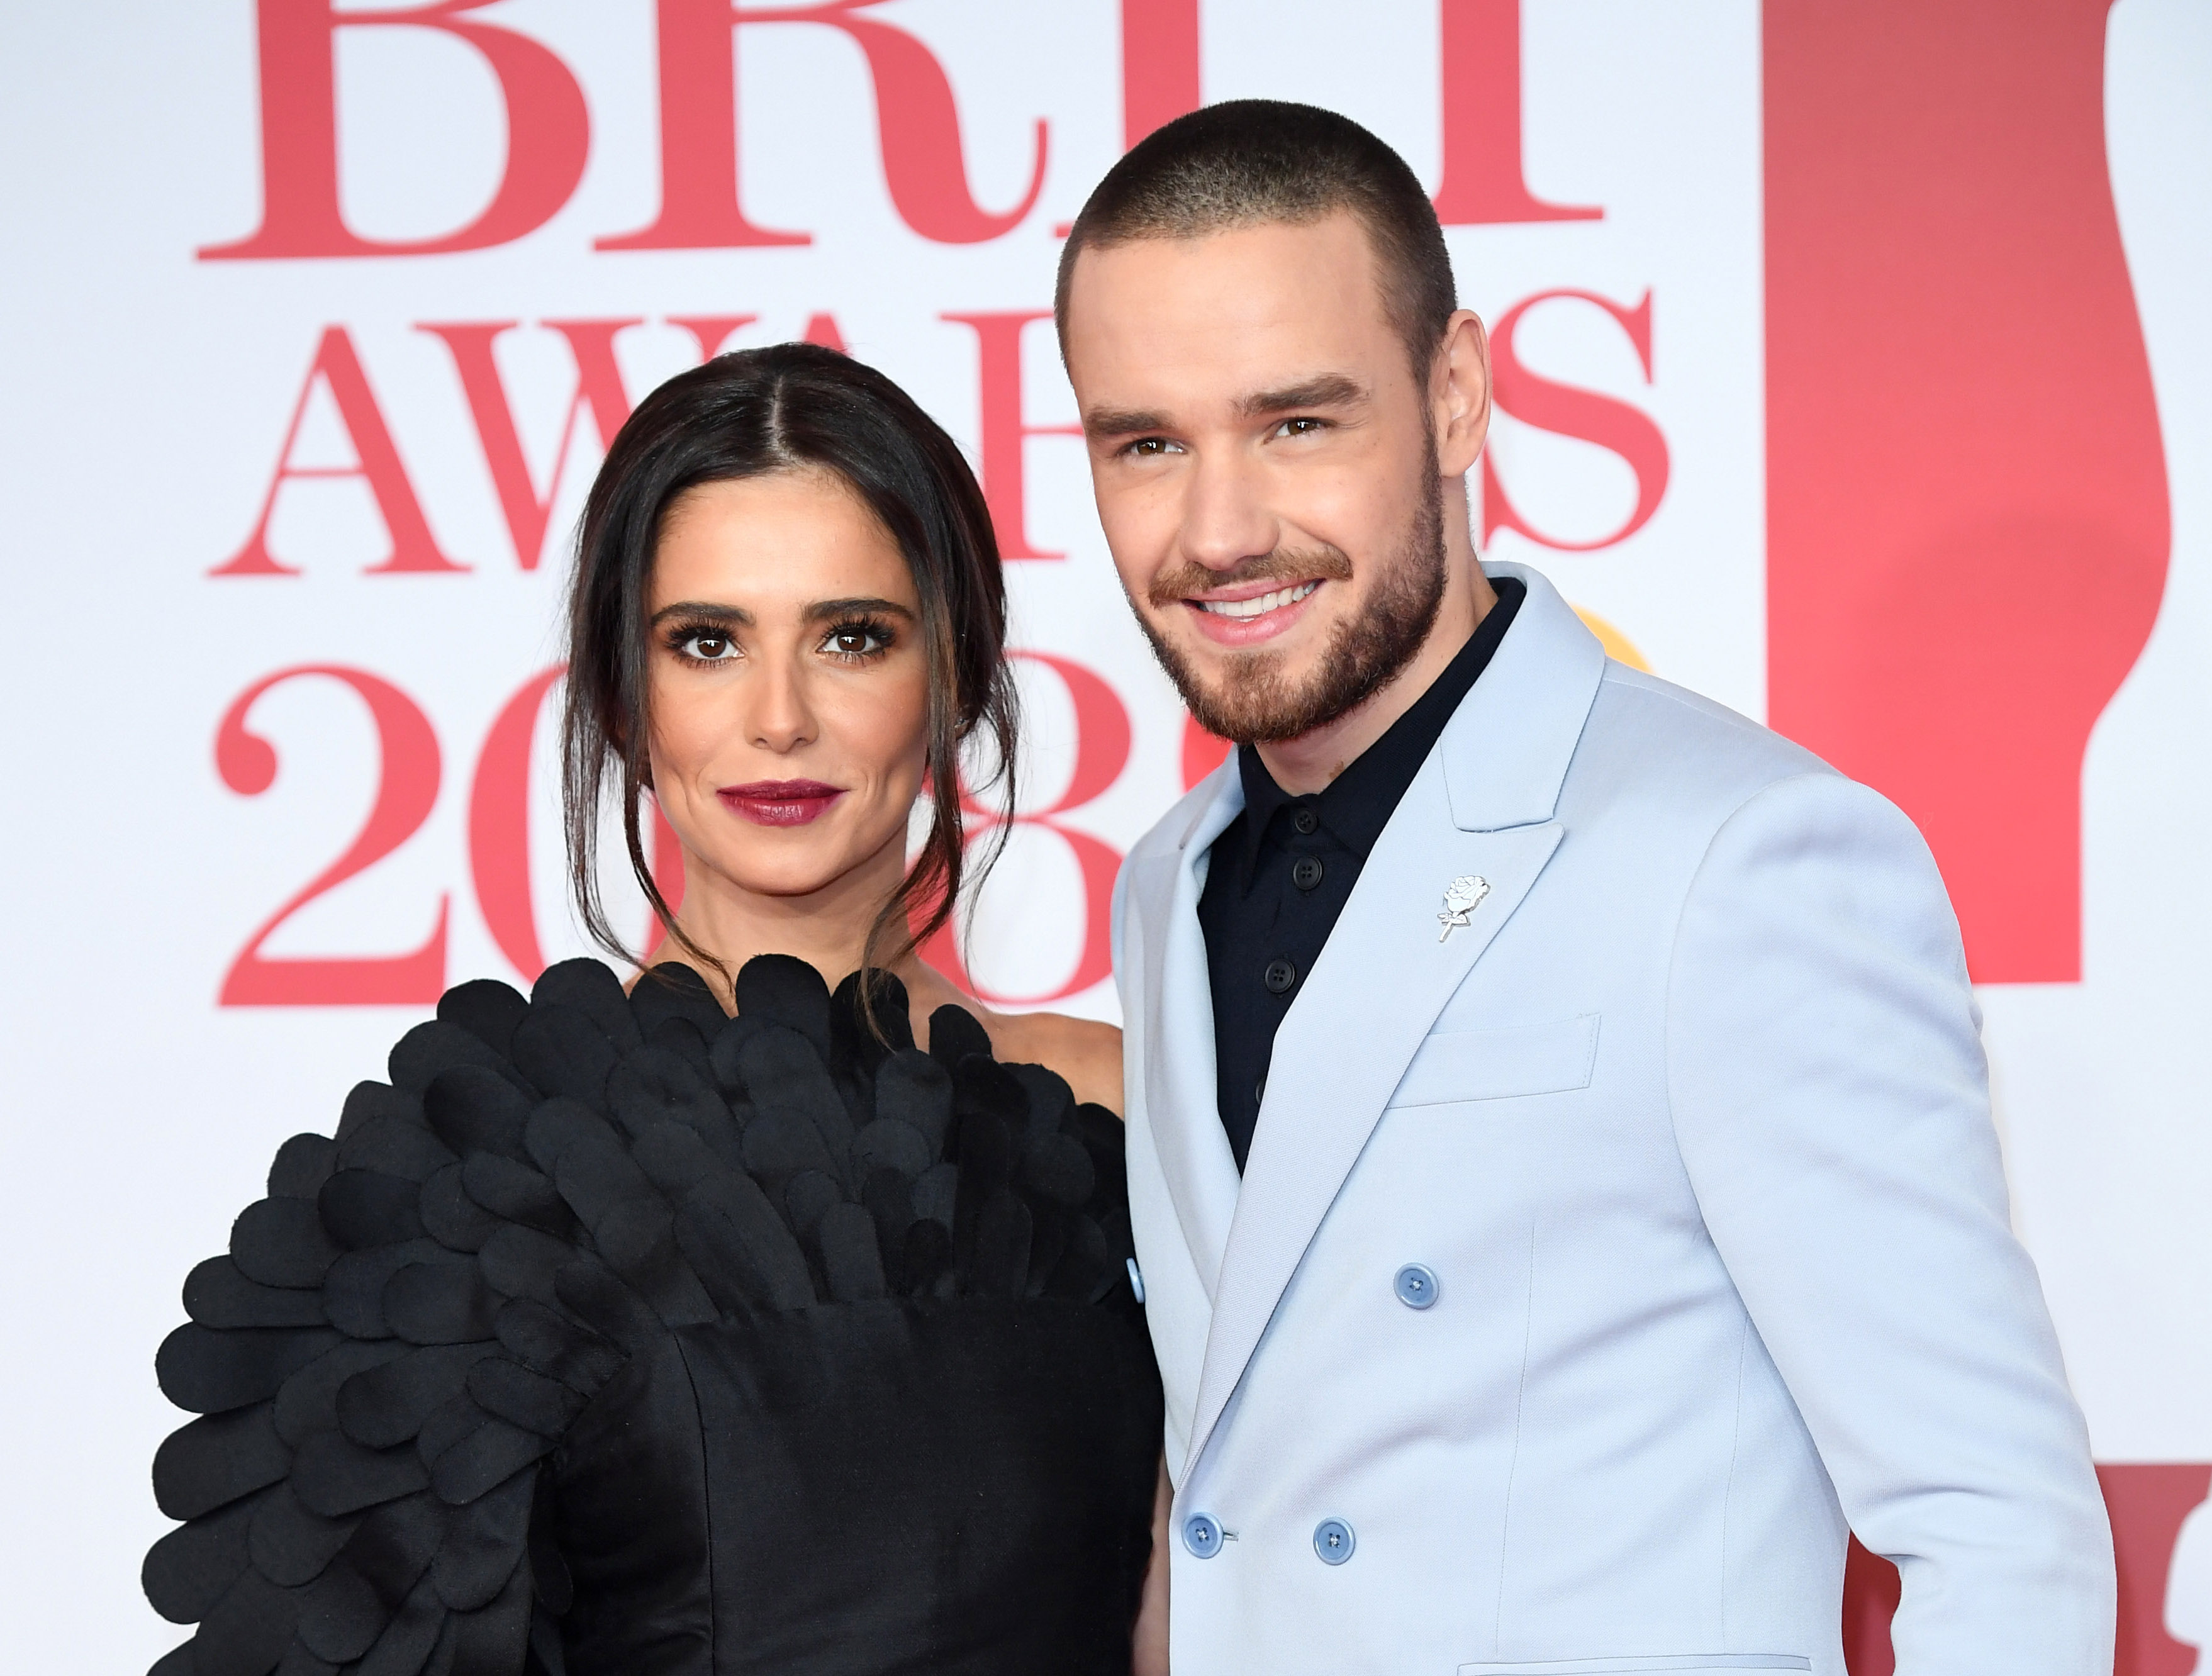 Cheryl and Liam Payne 'to be kept apart' for X Factor live shows performances